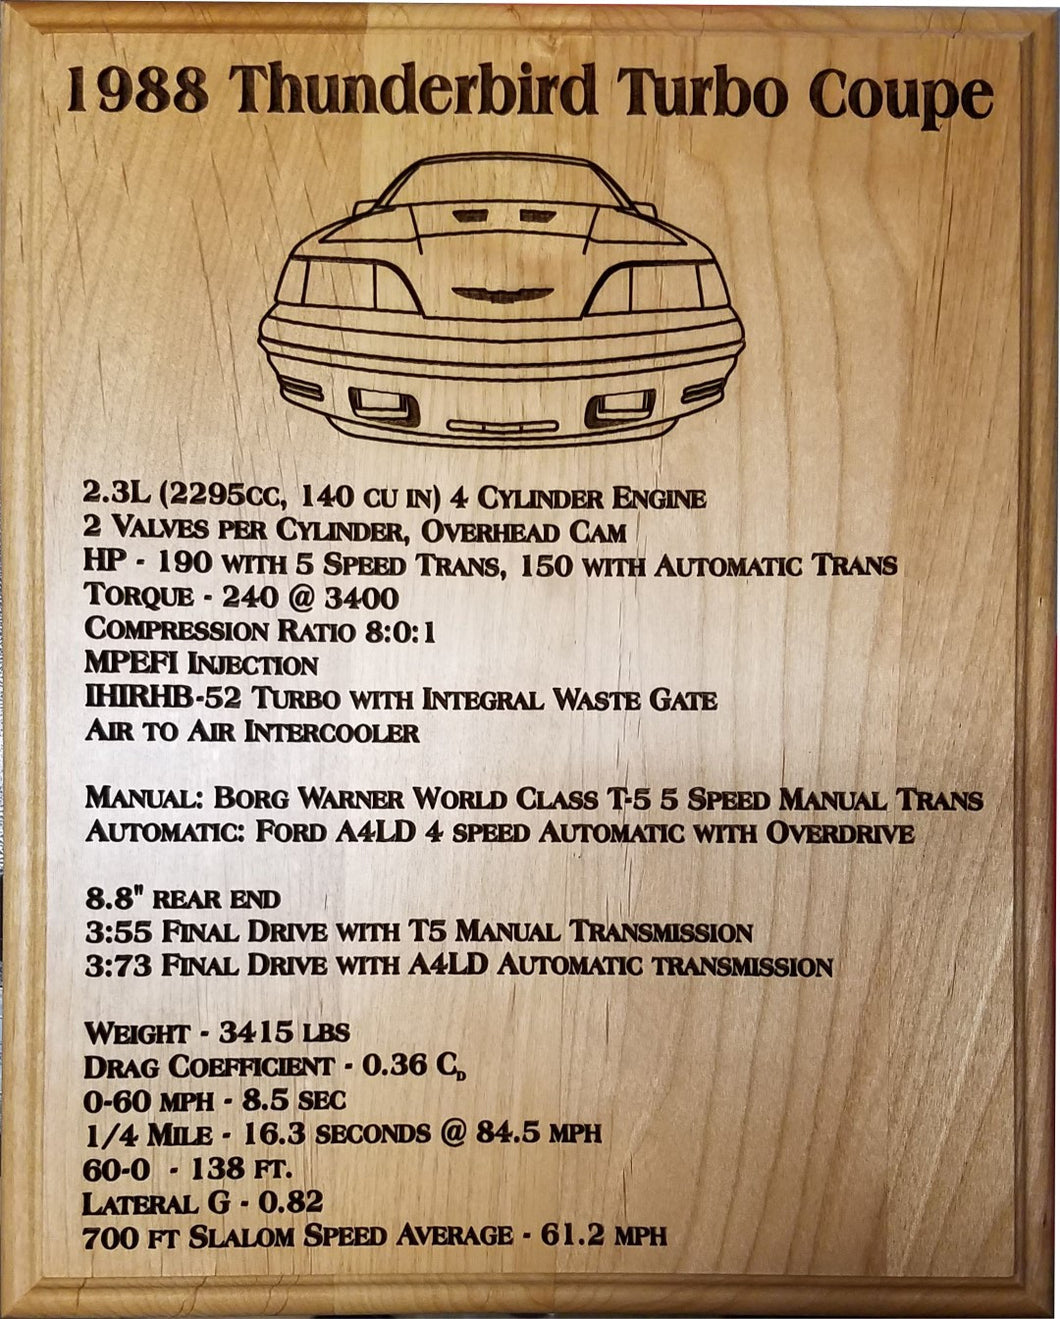 1988 Thunderbird Turbo Coupe Display Plaque